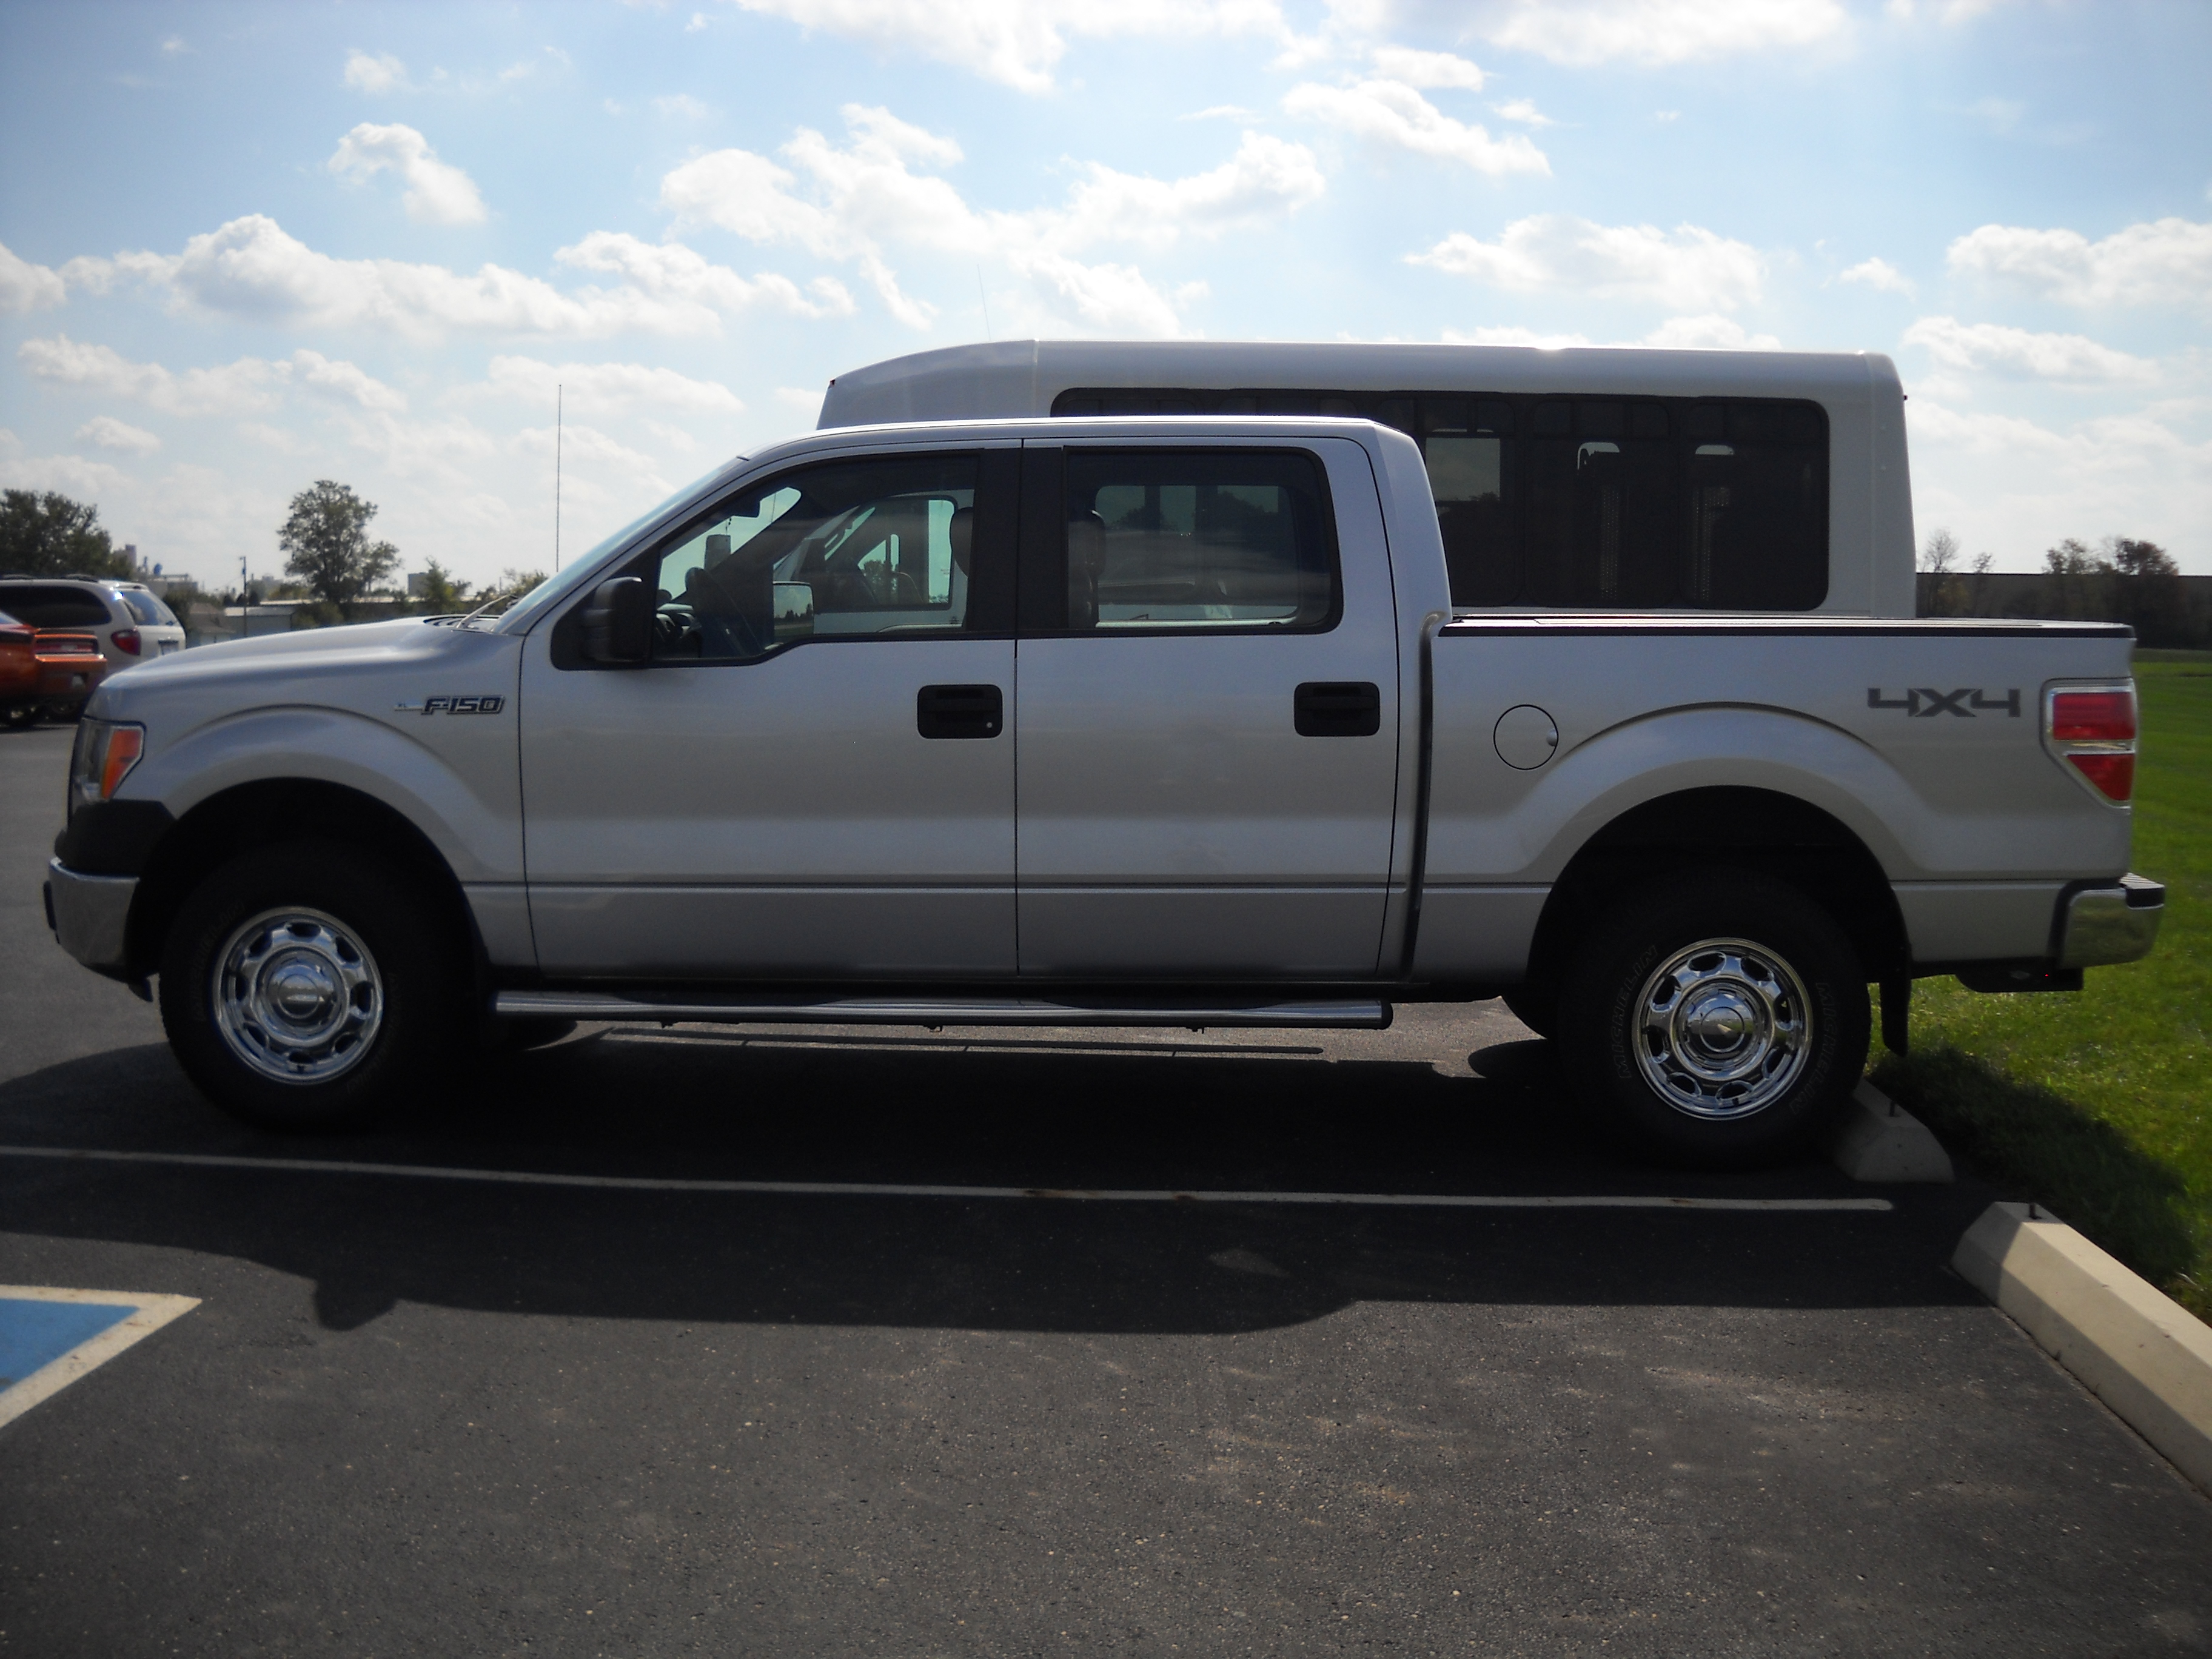 Gmc Dealers Columbus Ohio >> truck bed covers truck bed cover reviews truck bed covers ...